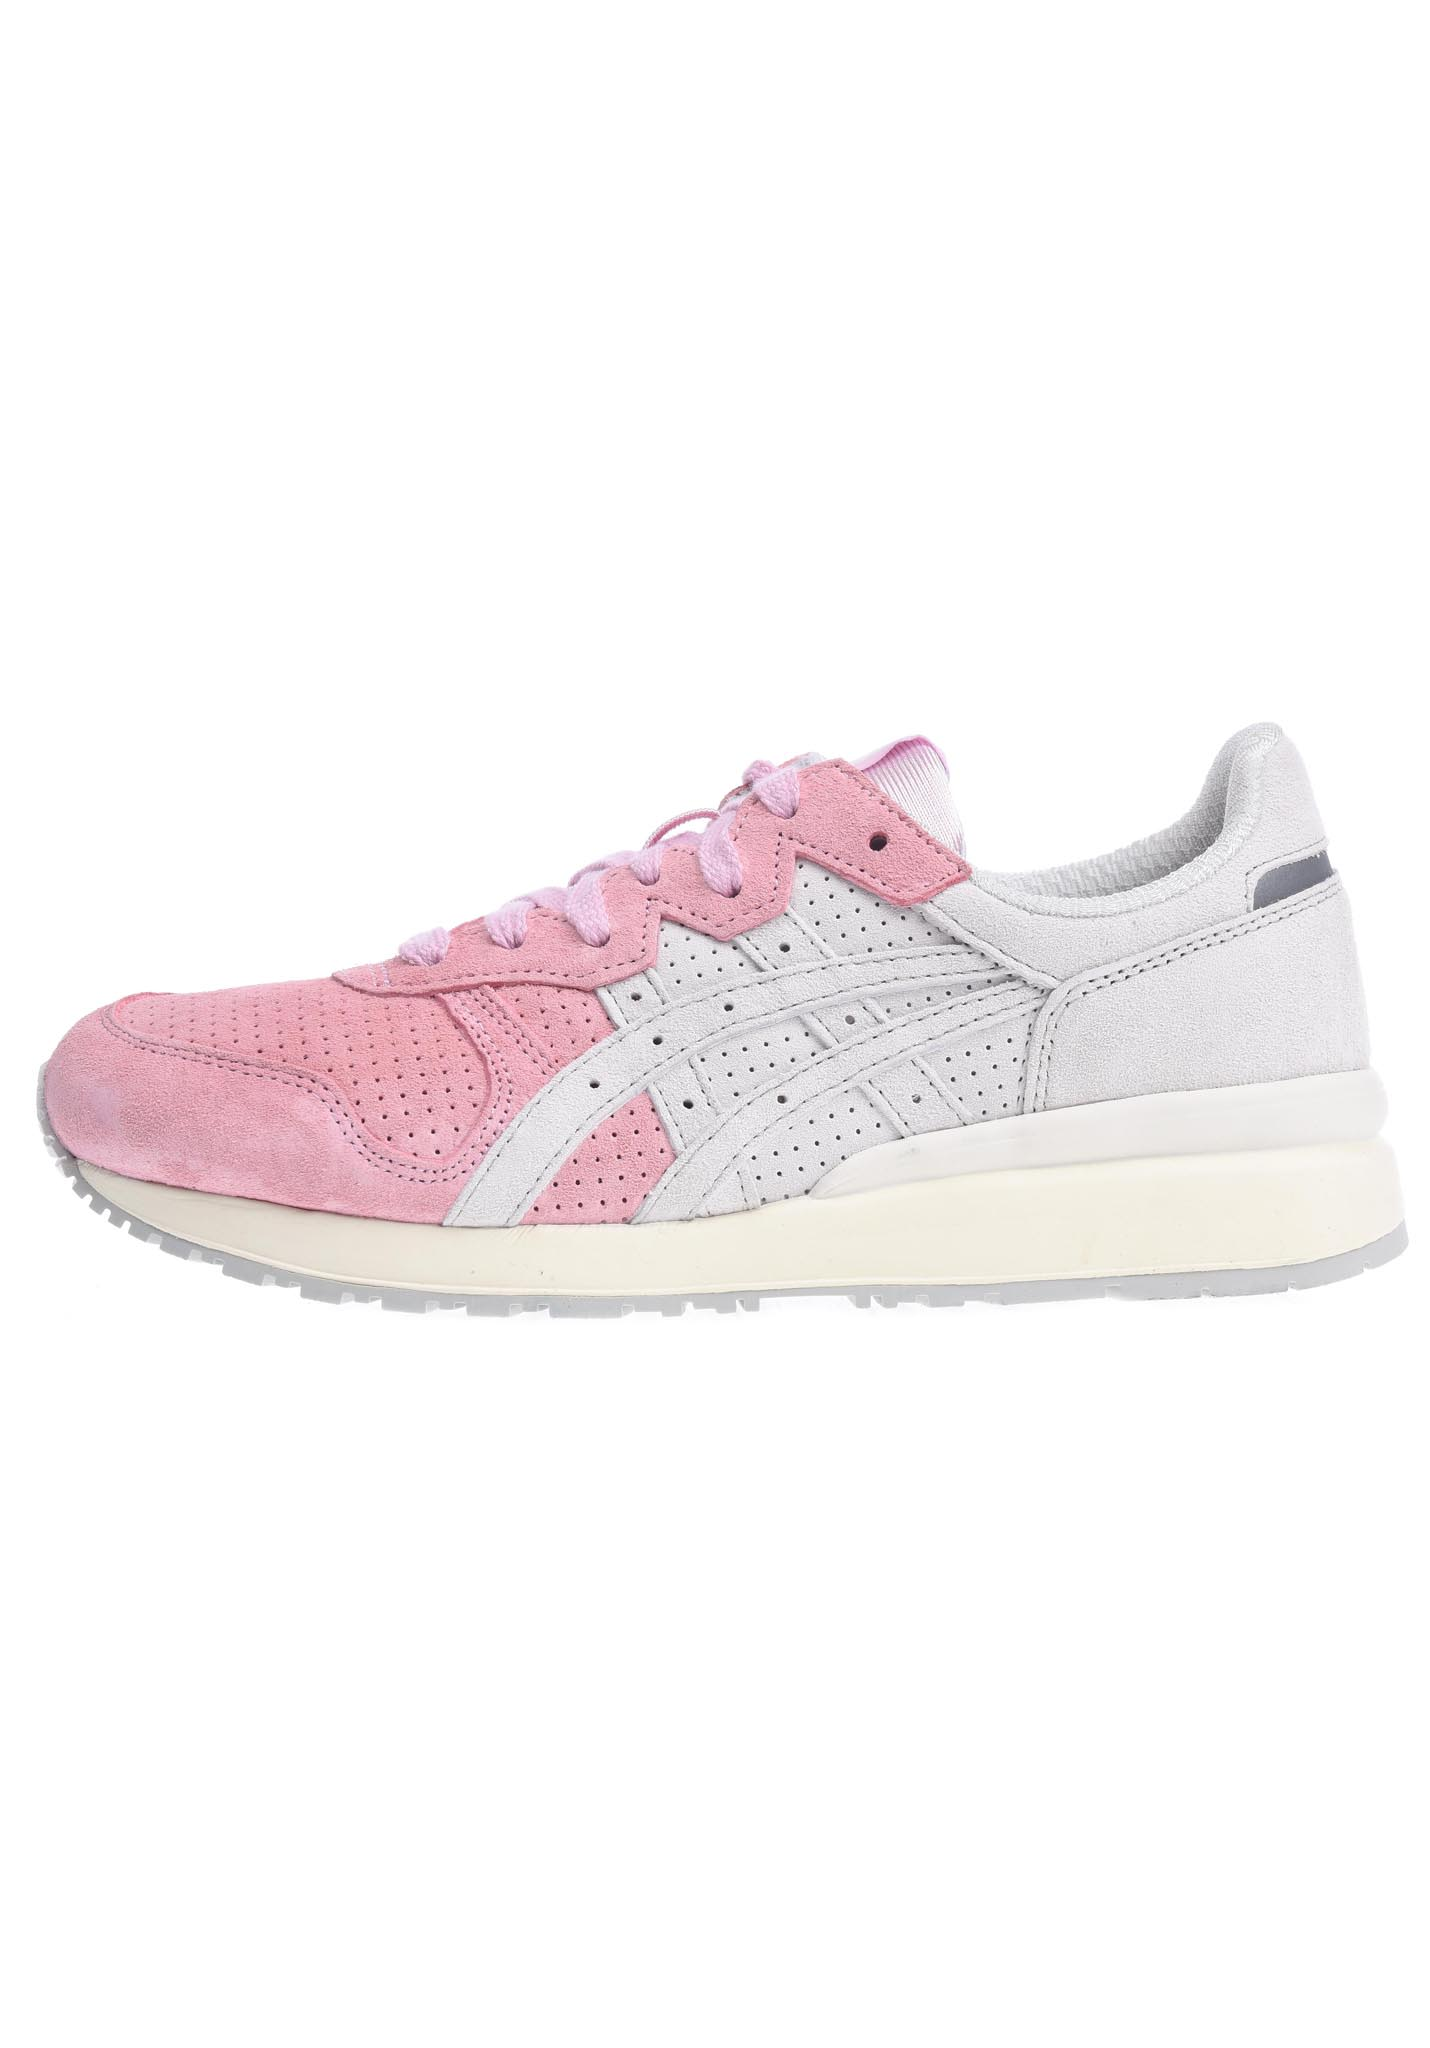 separation shoes 7f28d 83cc5 Onitsuka Tiger Tiger Ally - Sneakers - Pink